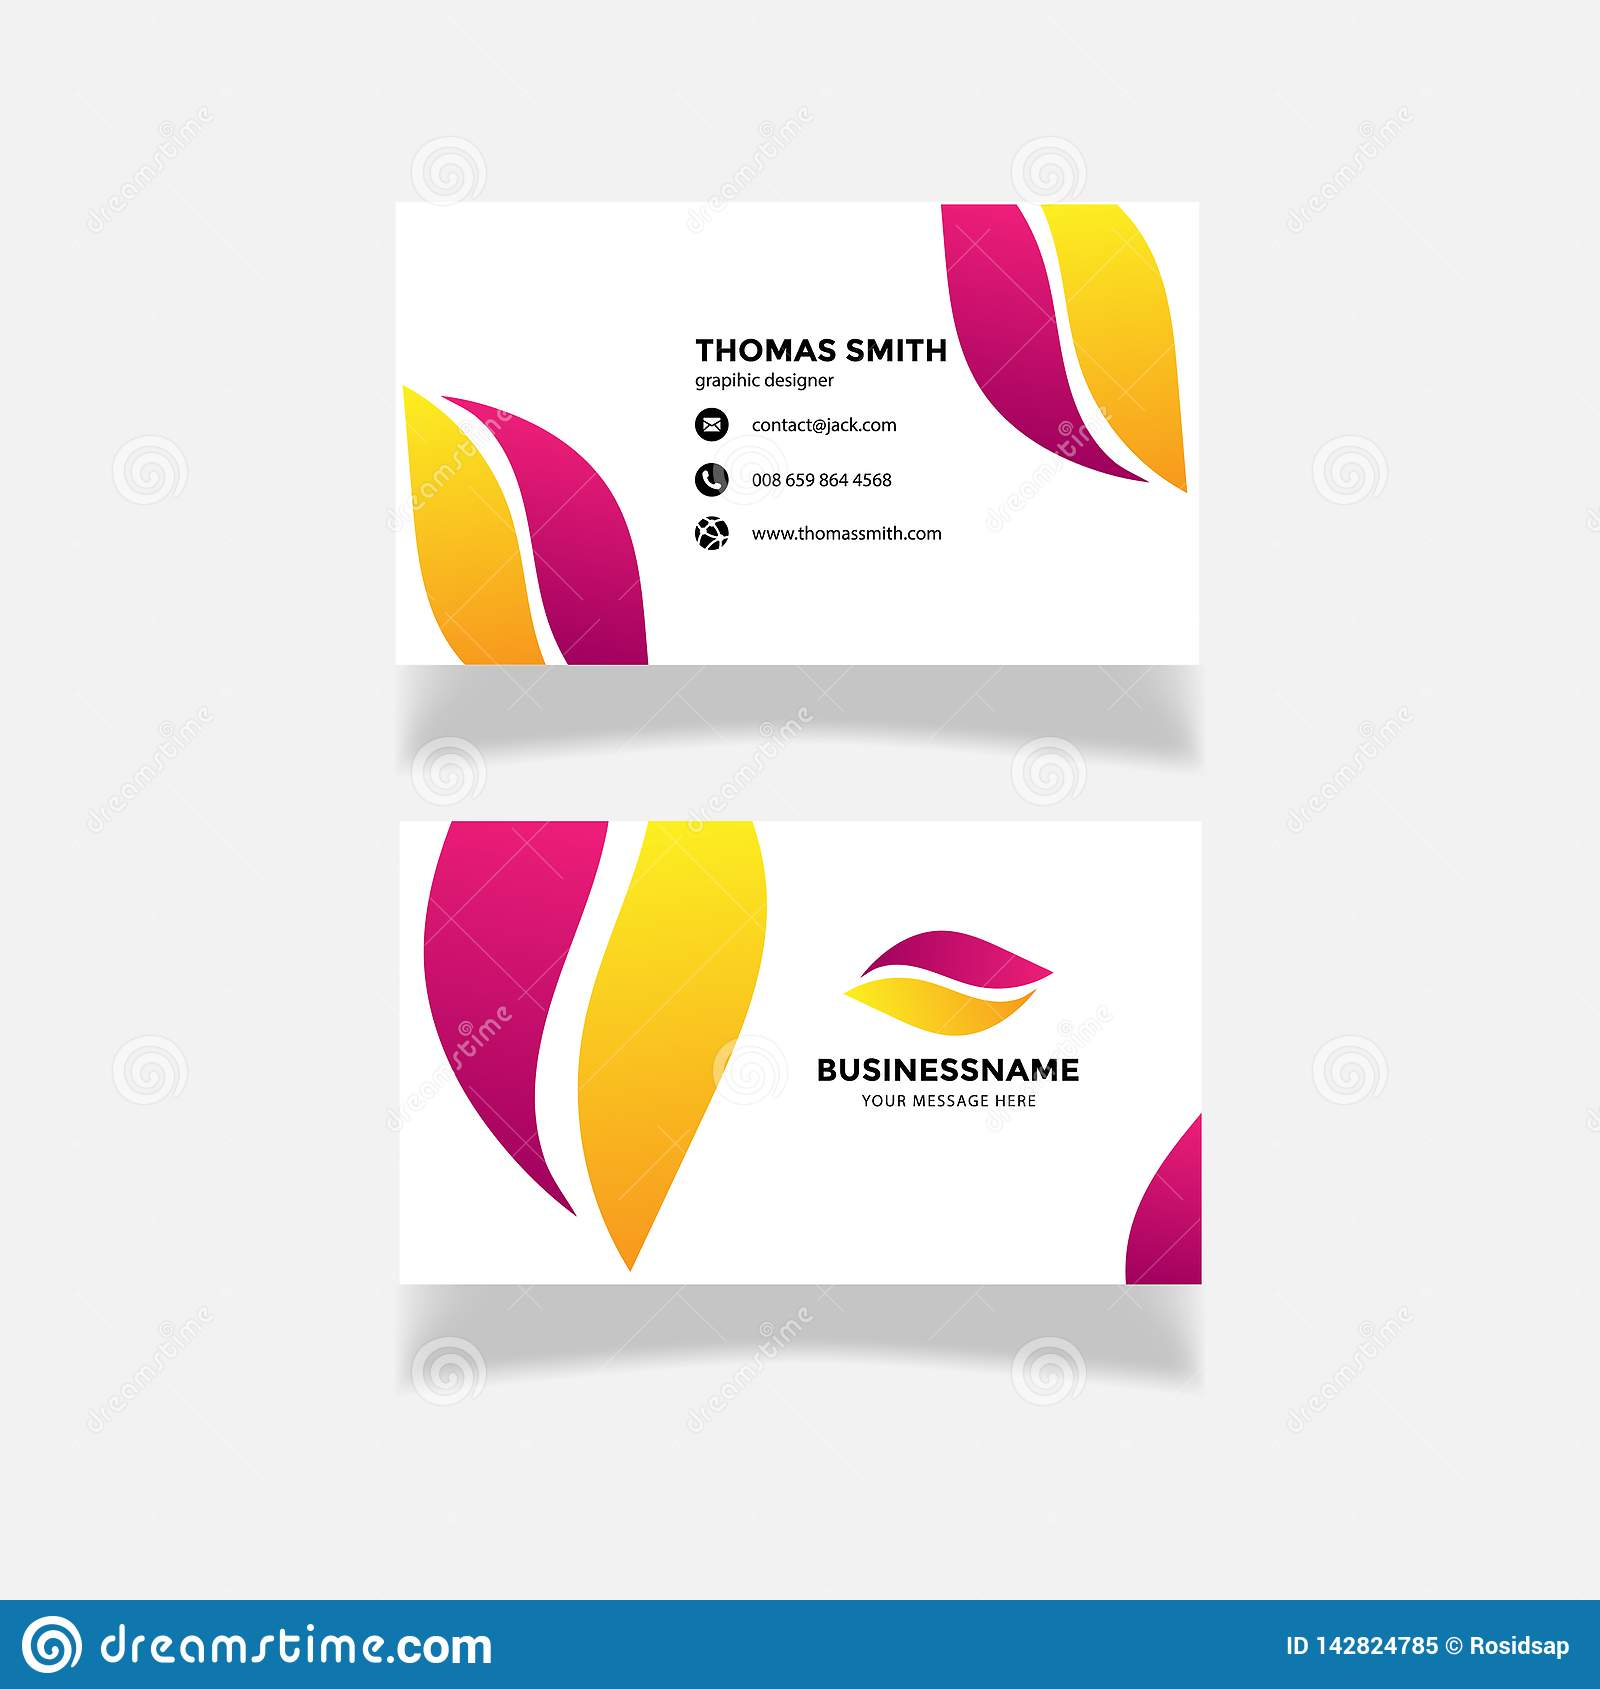 Modern purple yellow business card template. flat design, logo creative abstract vector-vector